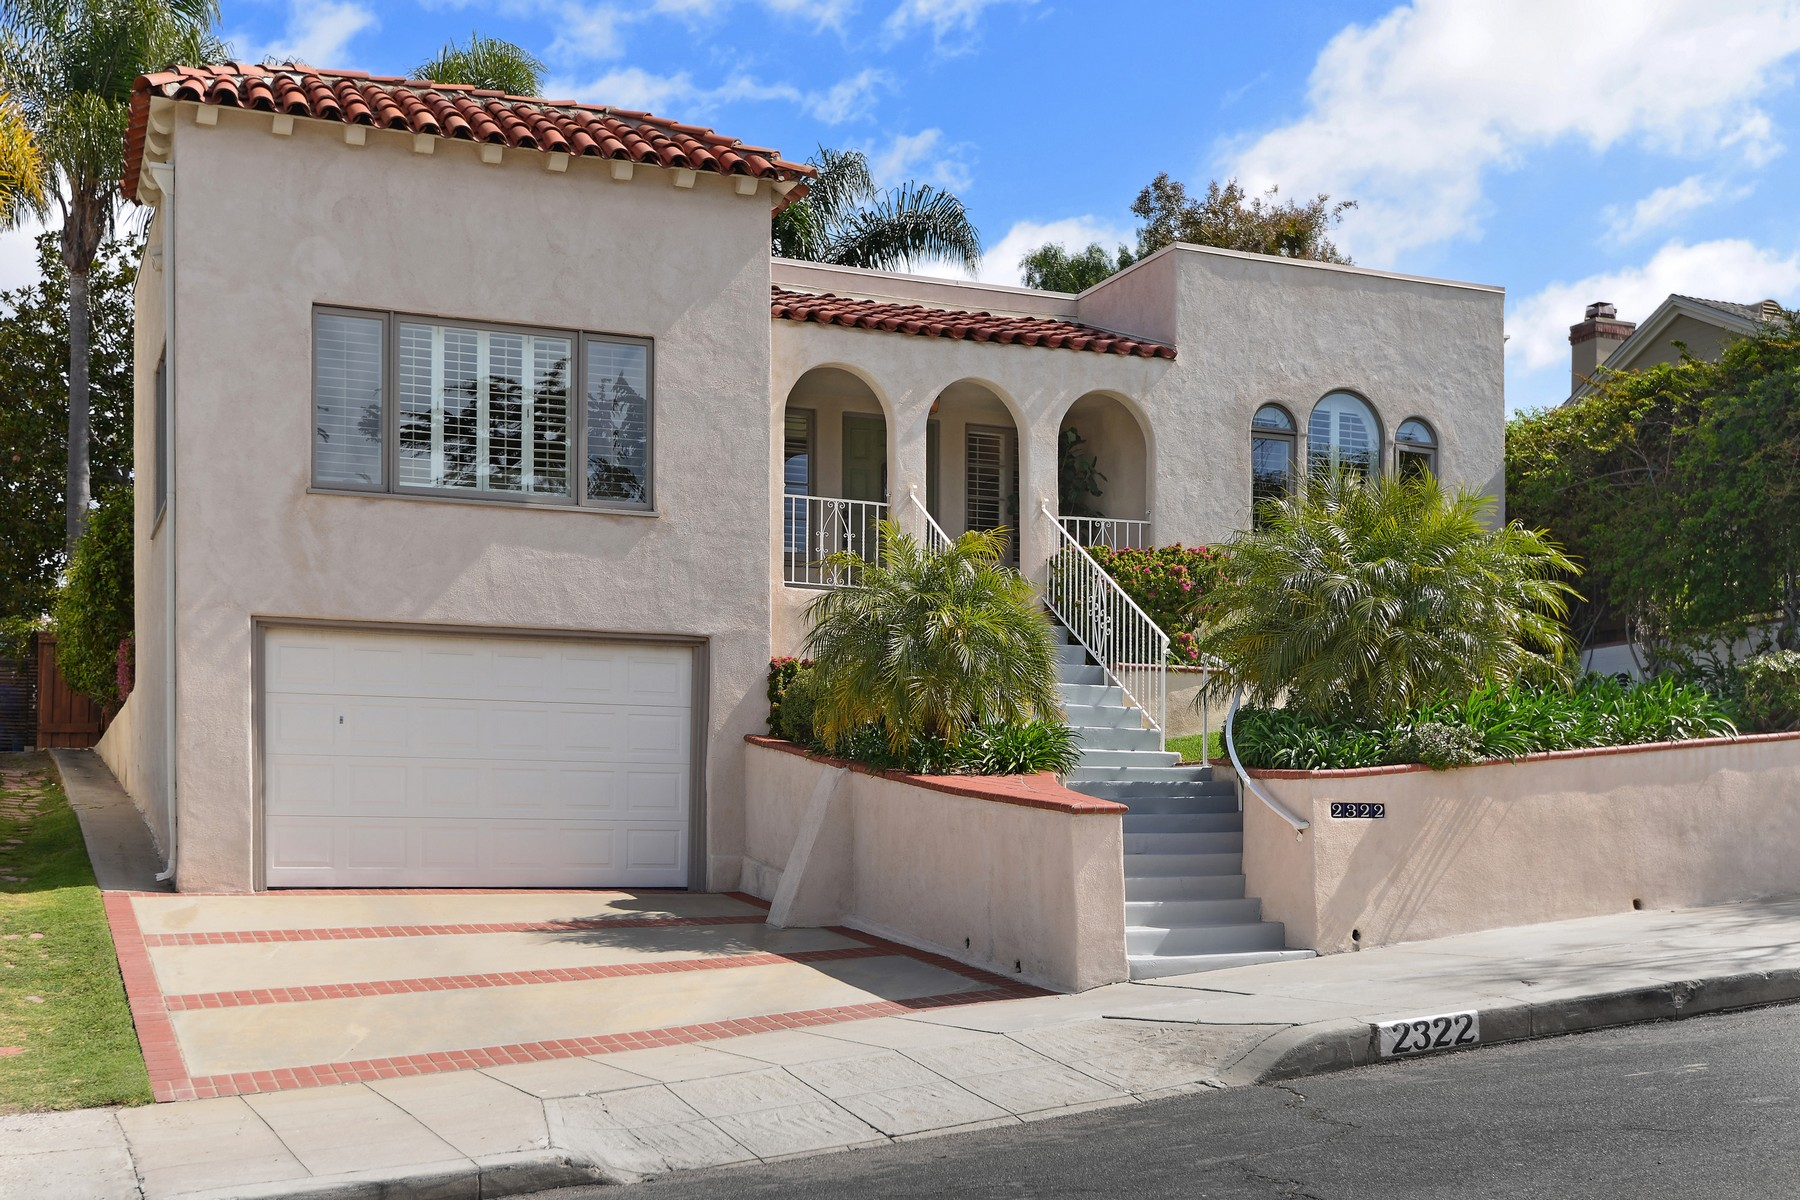 Single Family Home for Sale at 2322 Whitman Street Mission Hills, San Diego, California, 92103 United States